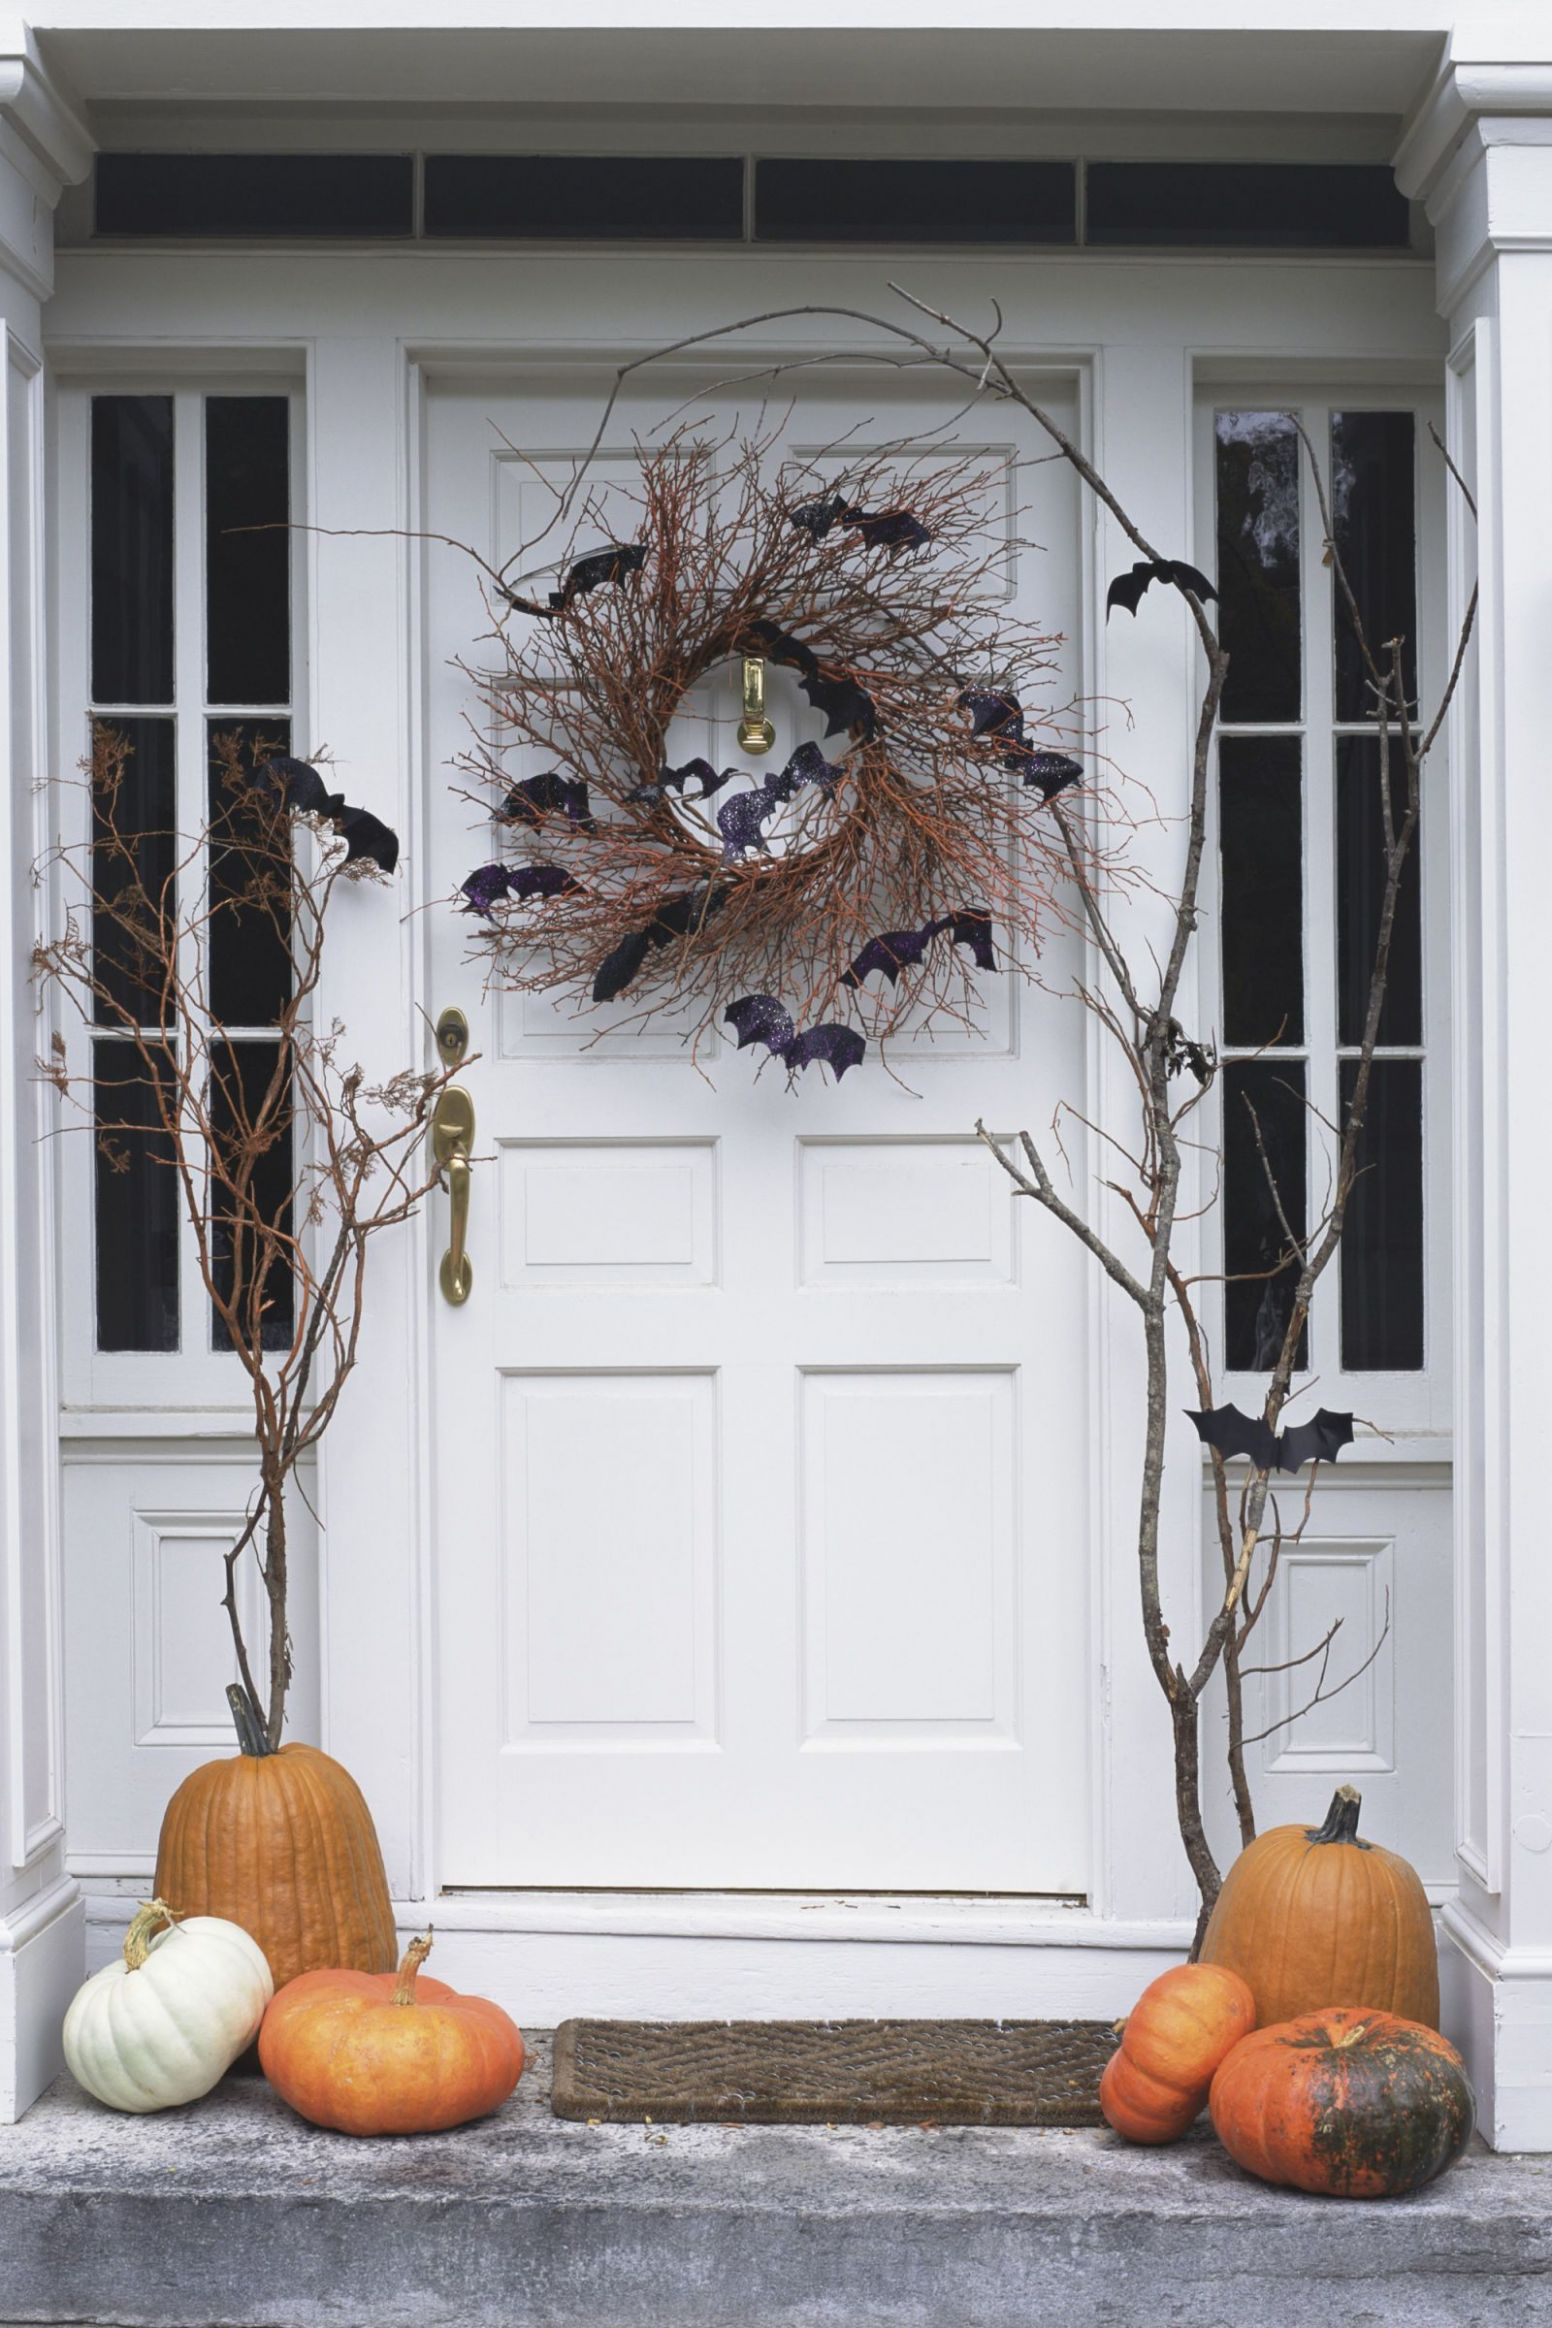 11 Spooky Halloween Decoration Ideas That Are So Chic It's Scary ...